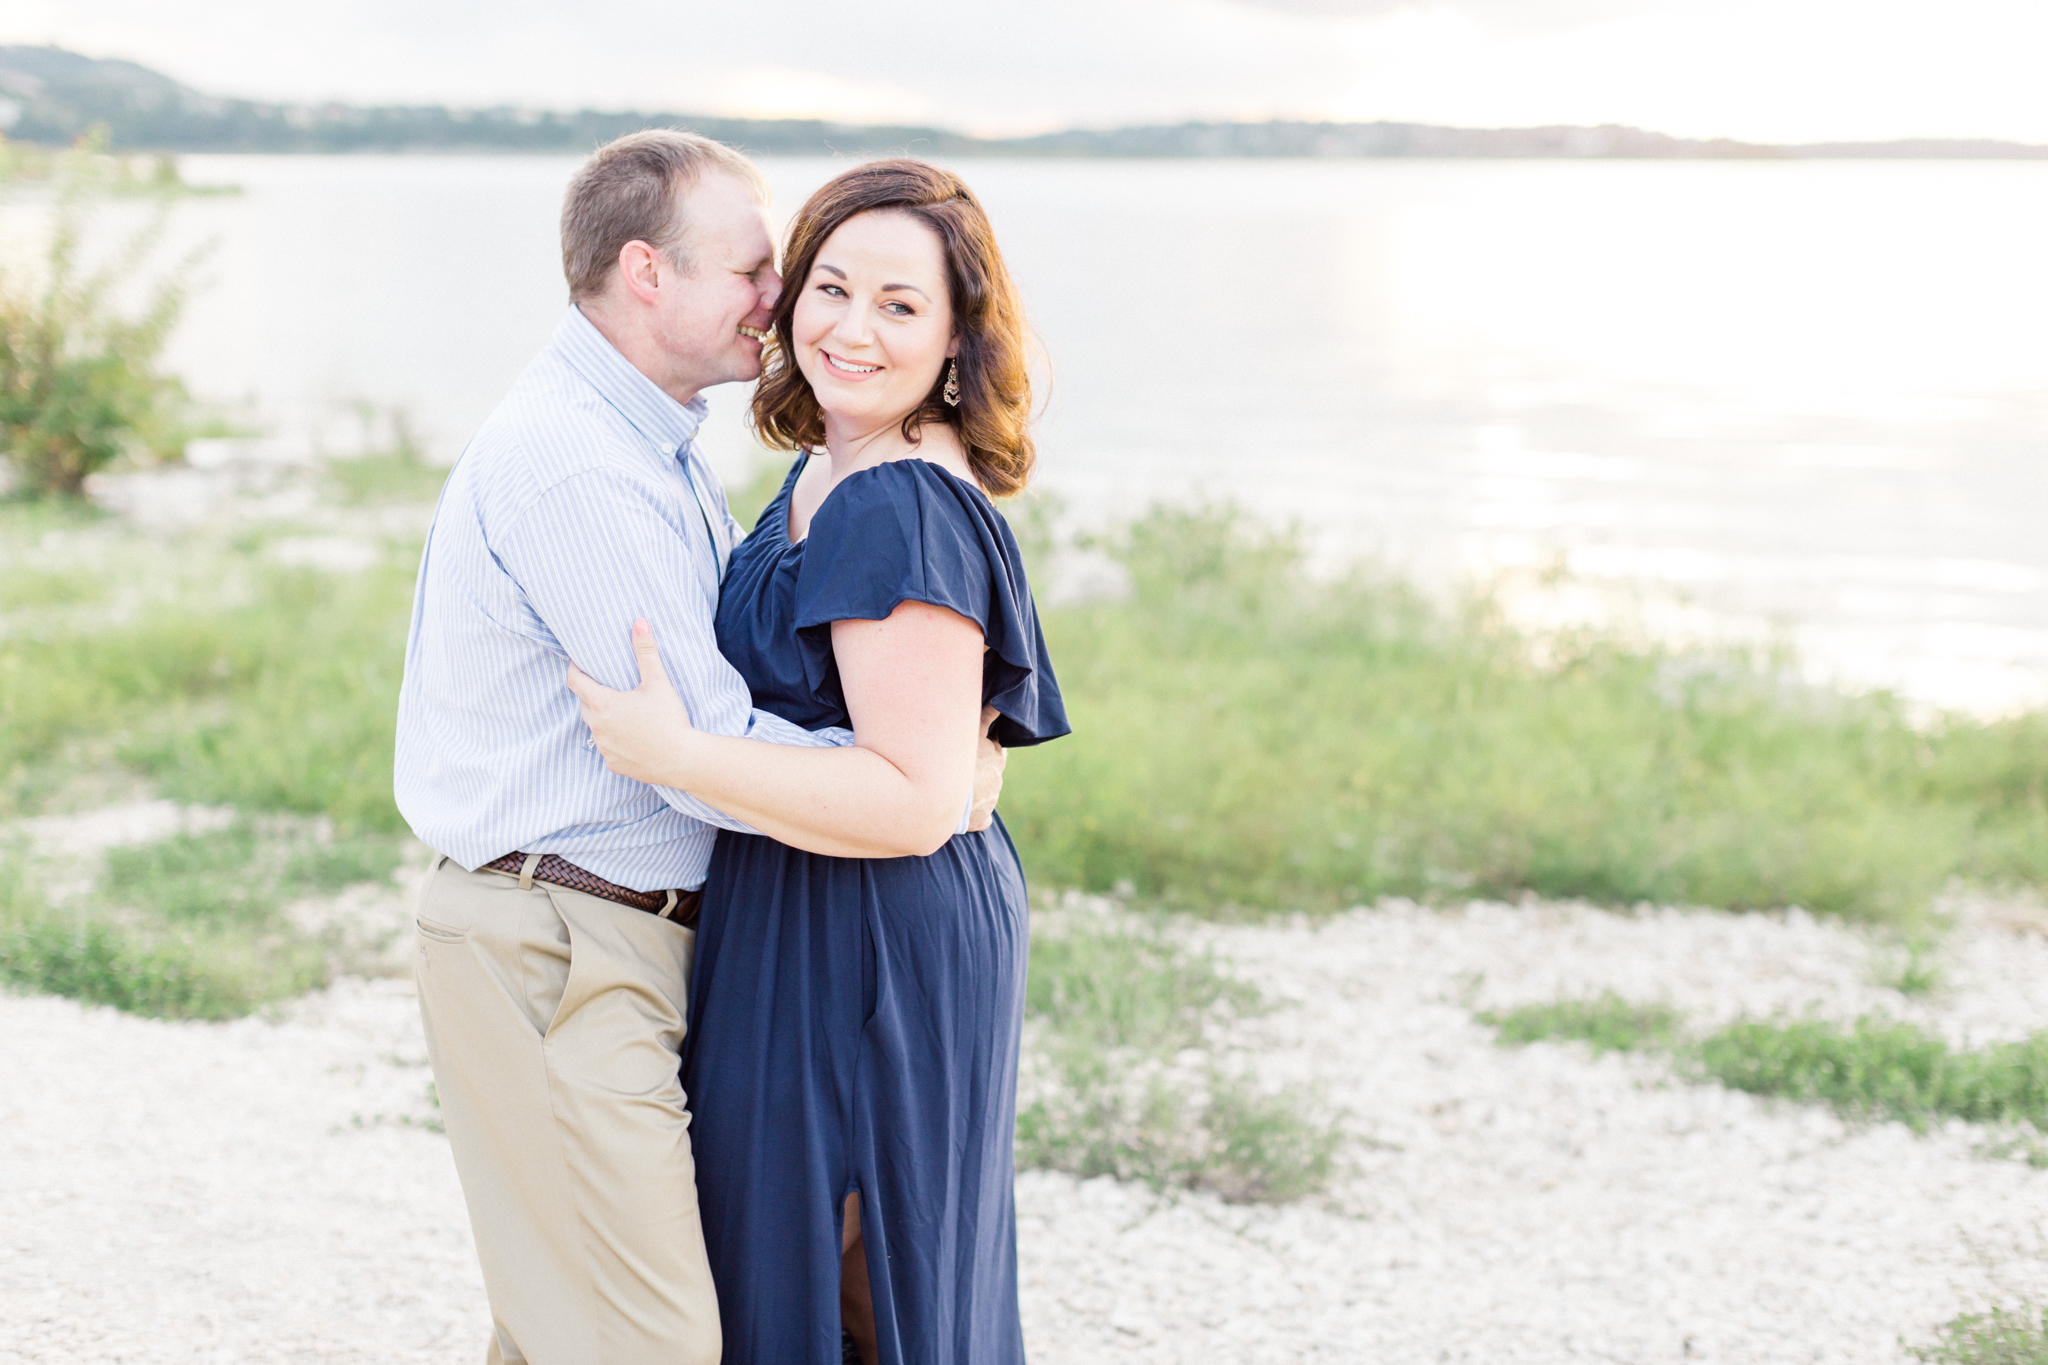 San Antonio Austin Tx Texas Hill Country Canyon Lake Overlook Park Session Wedding Engagement Anniversary Photographer Engagement Anniversary Photo Session Pictures